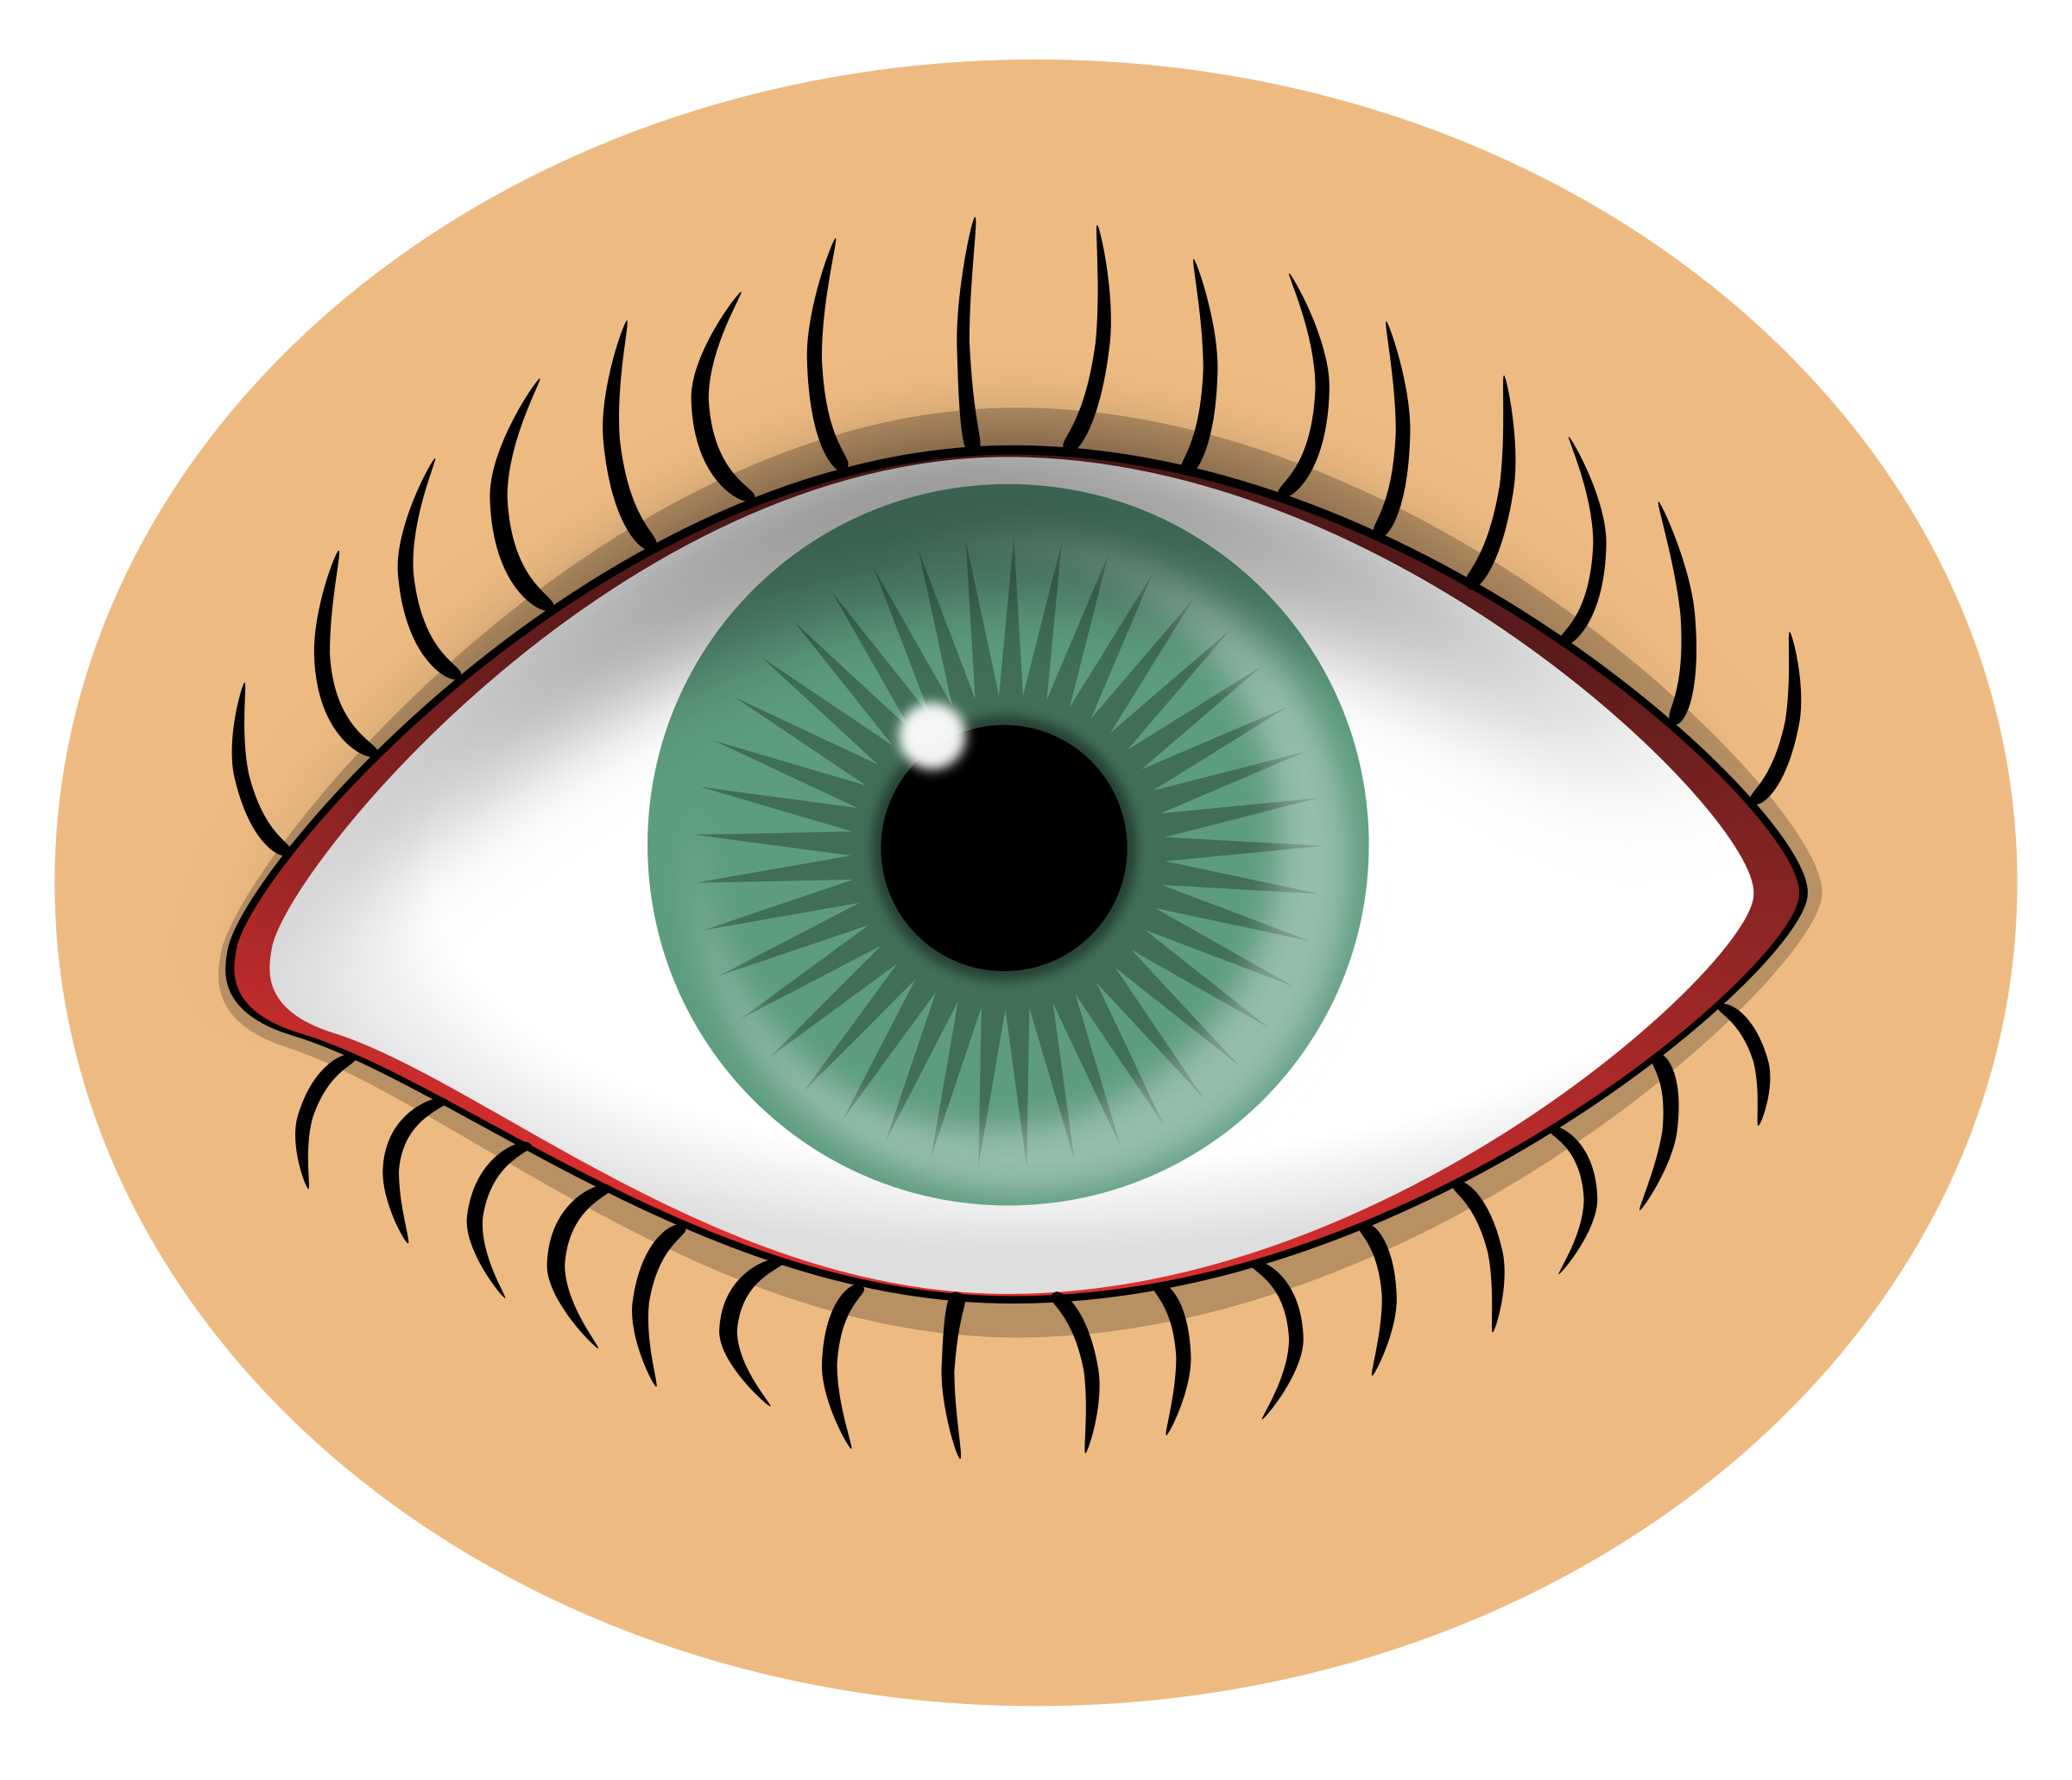 Eyeball clipart eyelash. Blue eye big image